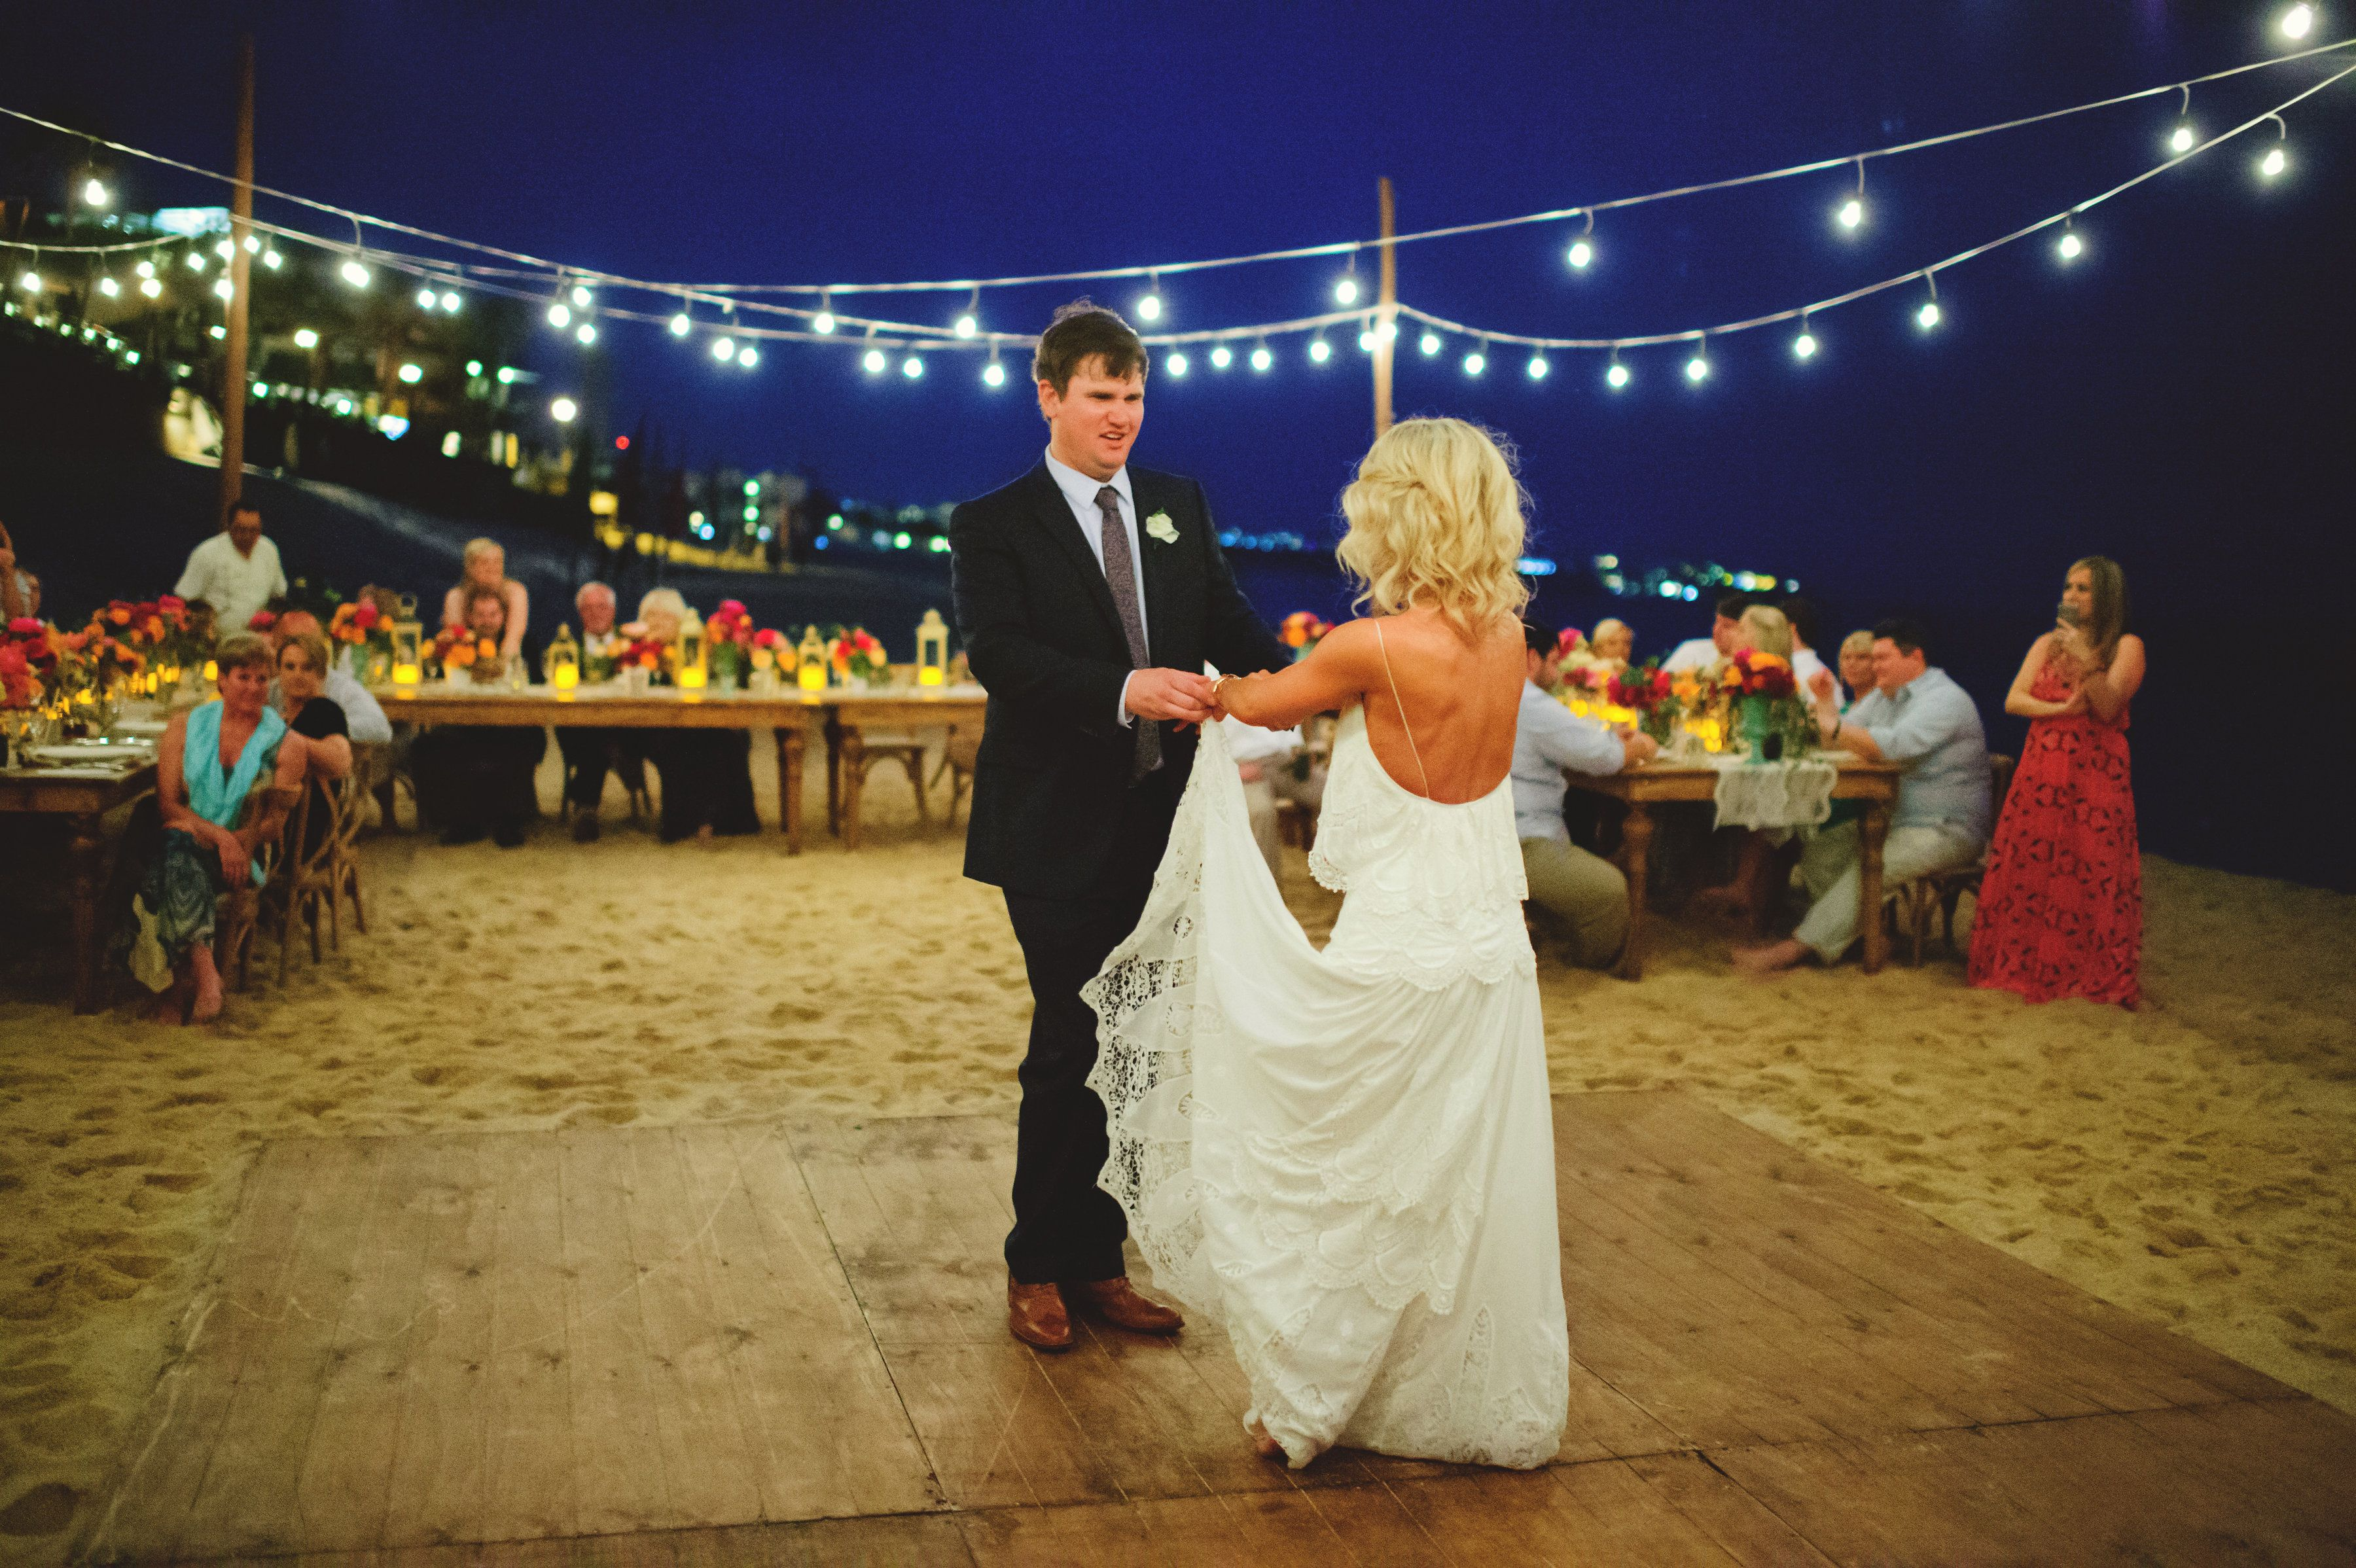 Bride and groom having first dance as husband and wife at their wedding in Cabo San Lucas. Designed and coordinated by Cabo Wedding Services